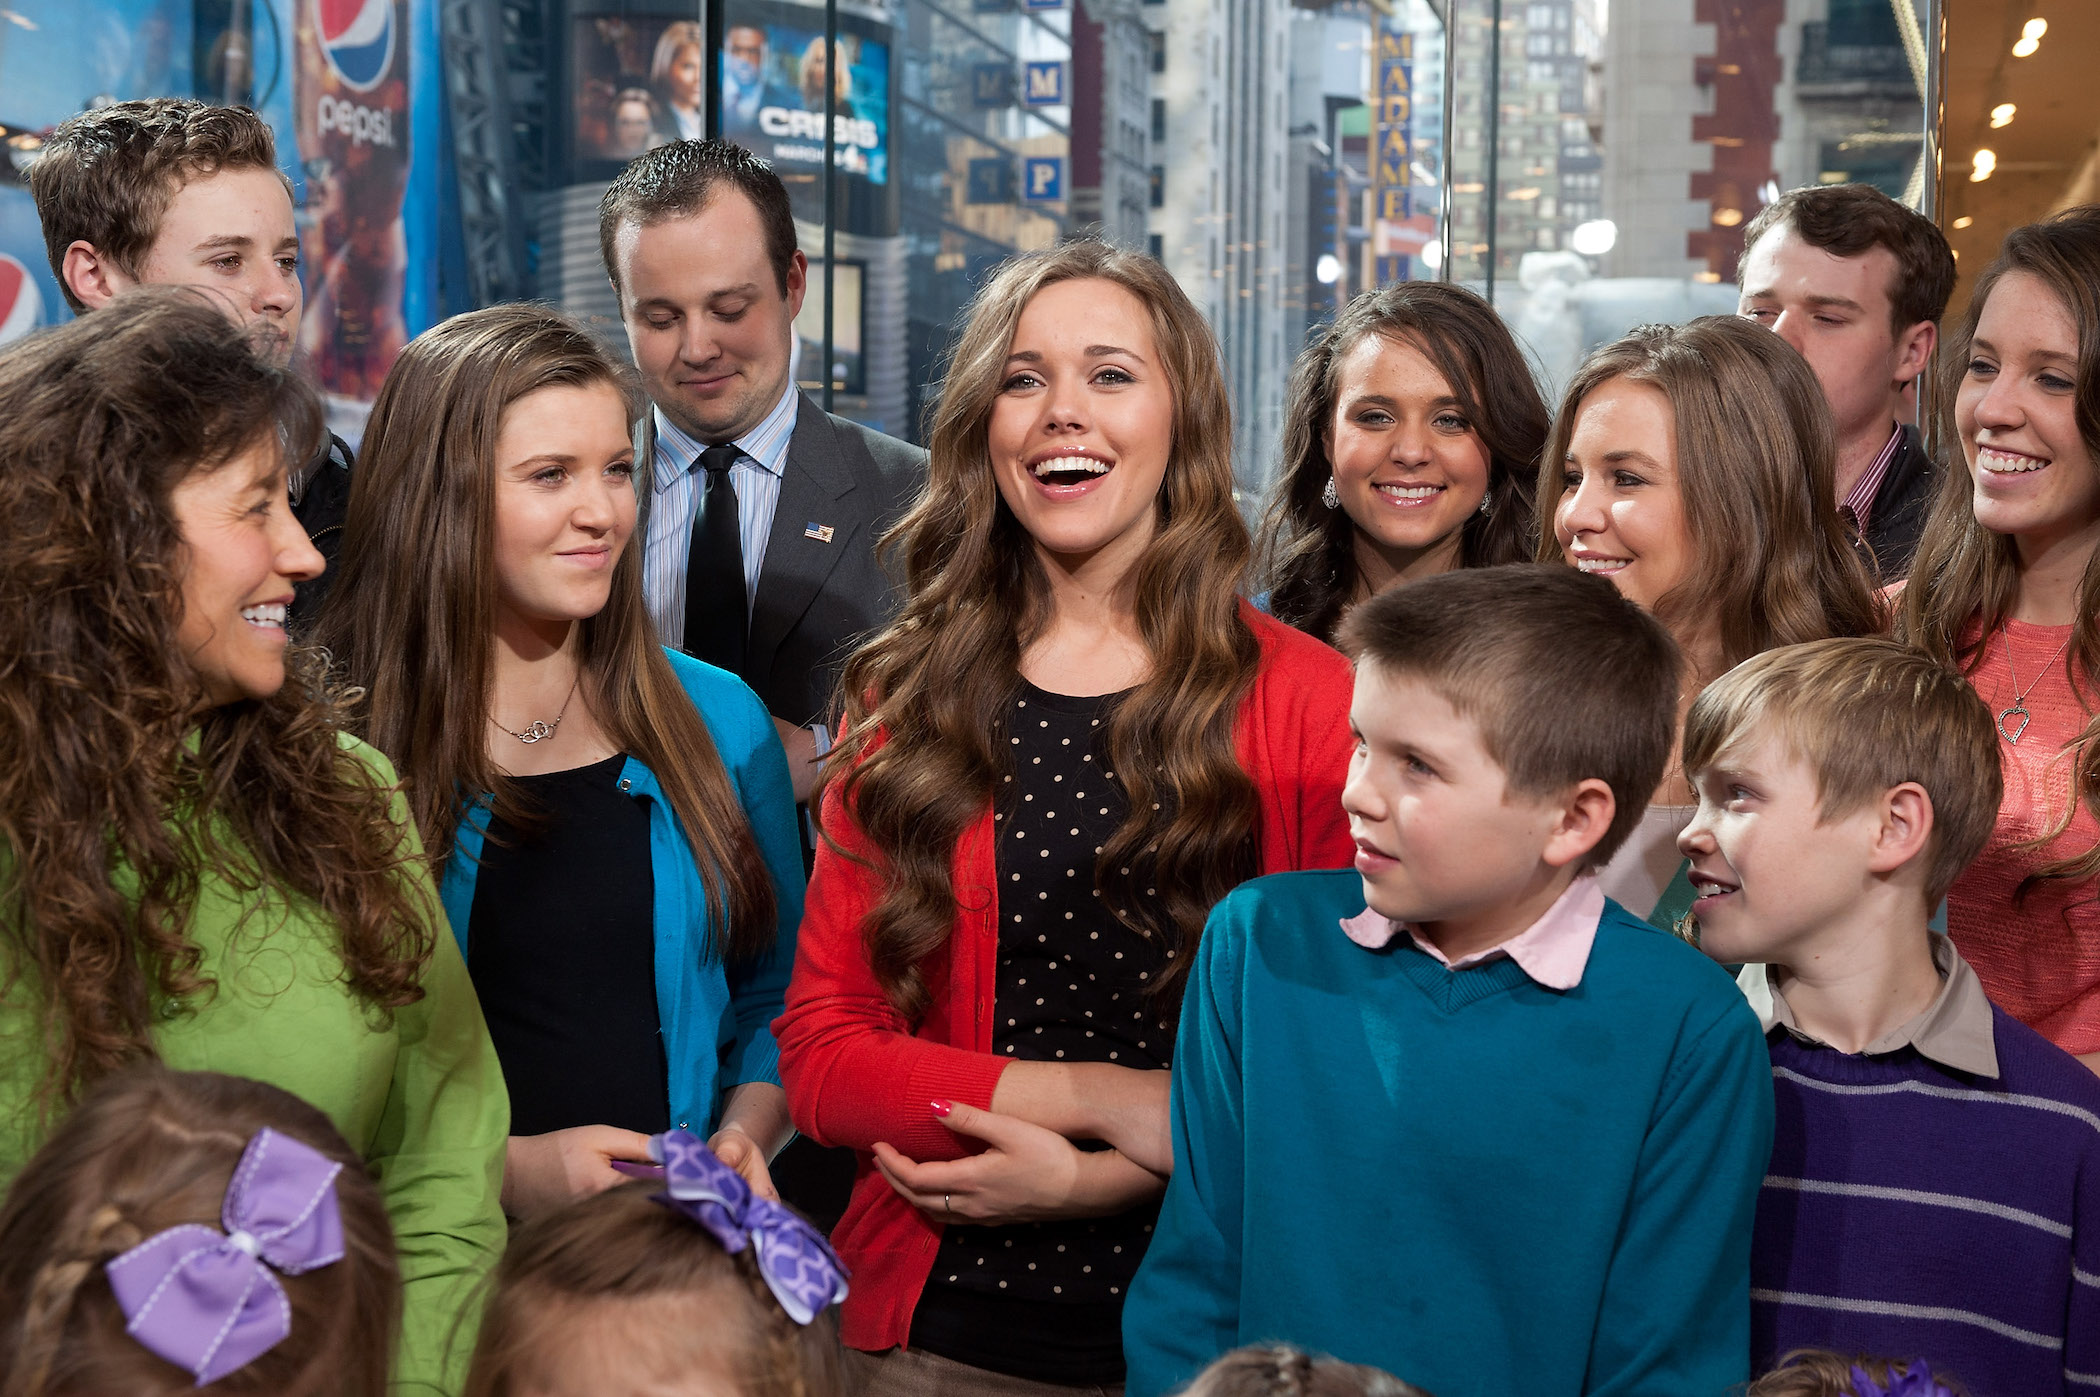 Jessa Duggar, in a red cardigan, surrounded by members of the Duggar family during a 2014 appearance on 'Extra.'